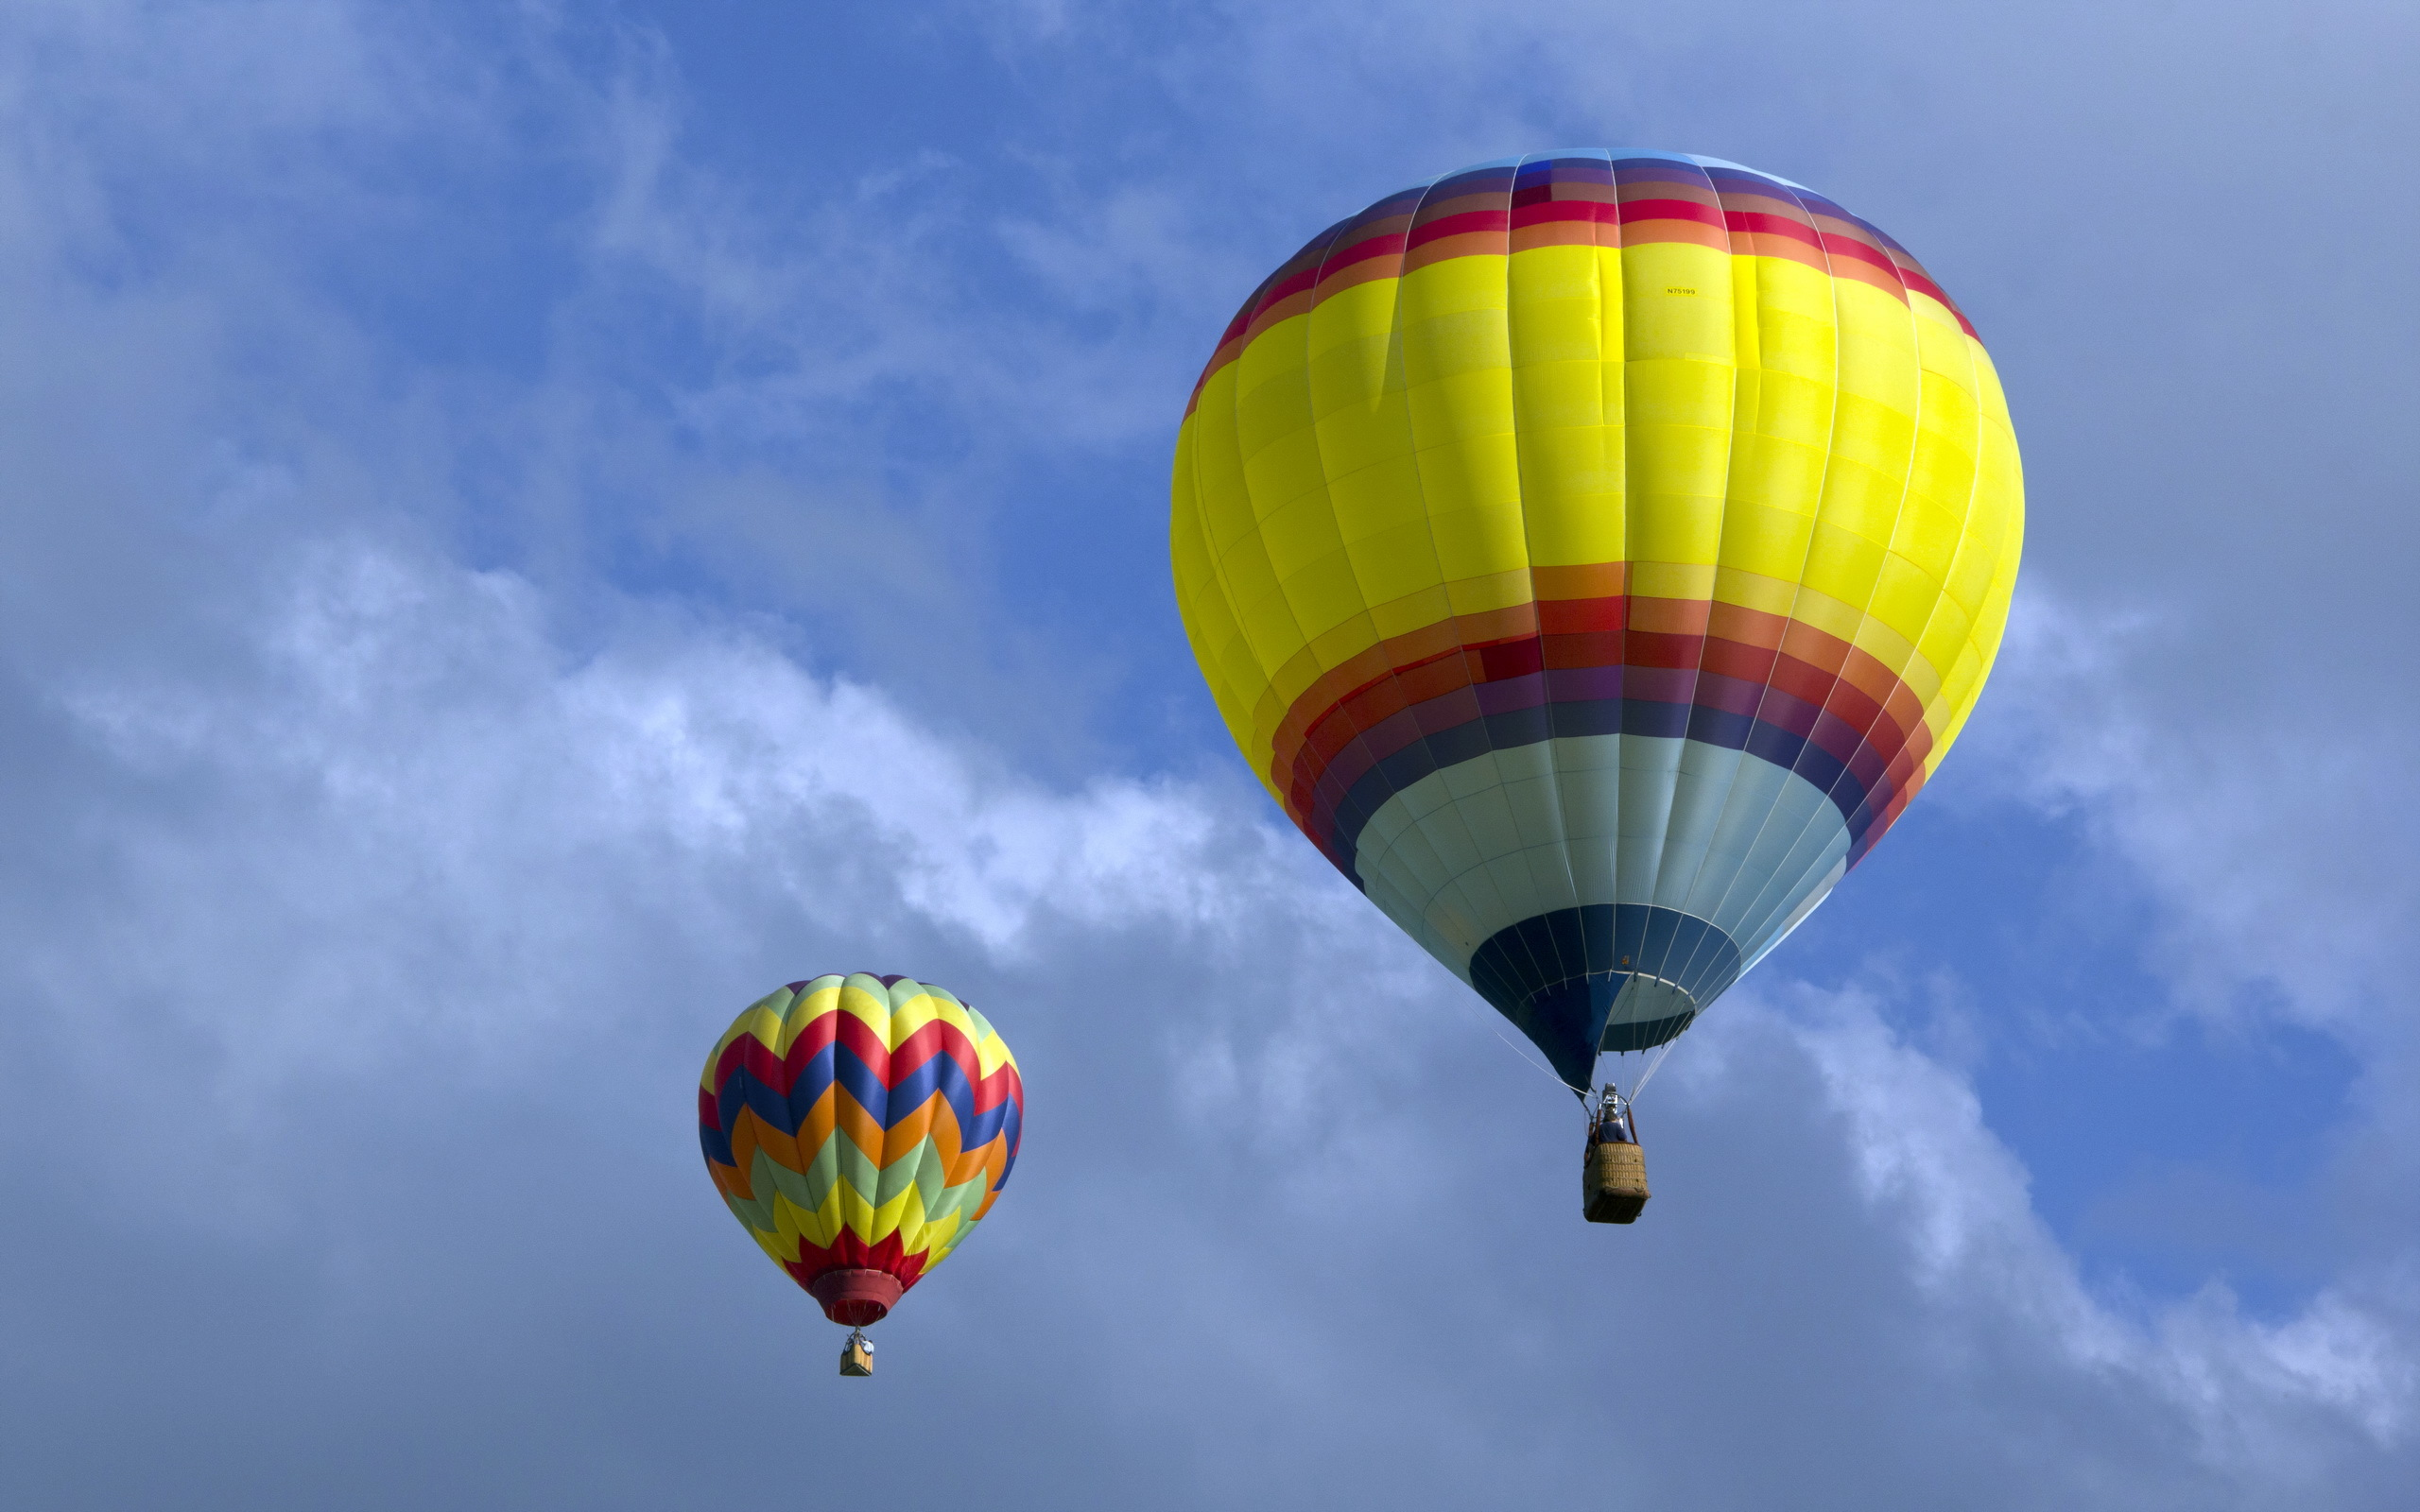 Animated Hd Wallpapers For Laptop 21 Wonderful Hd Hot Air Balloon Wallpapers